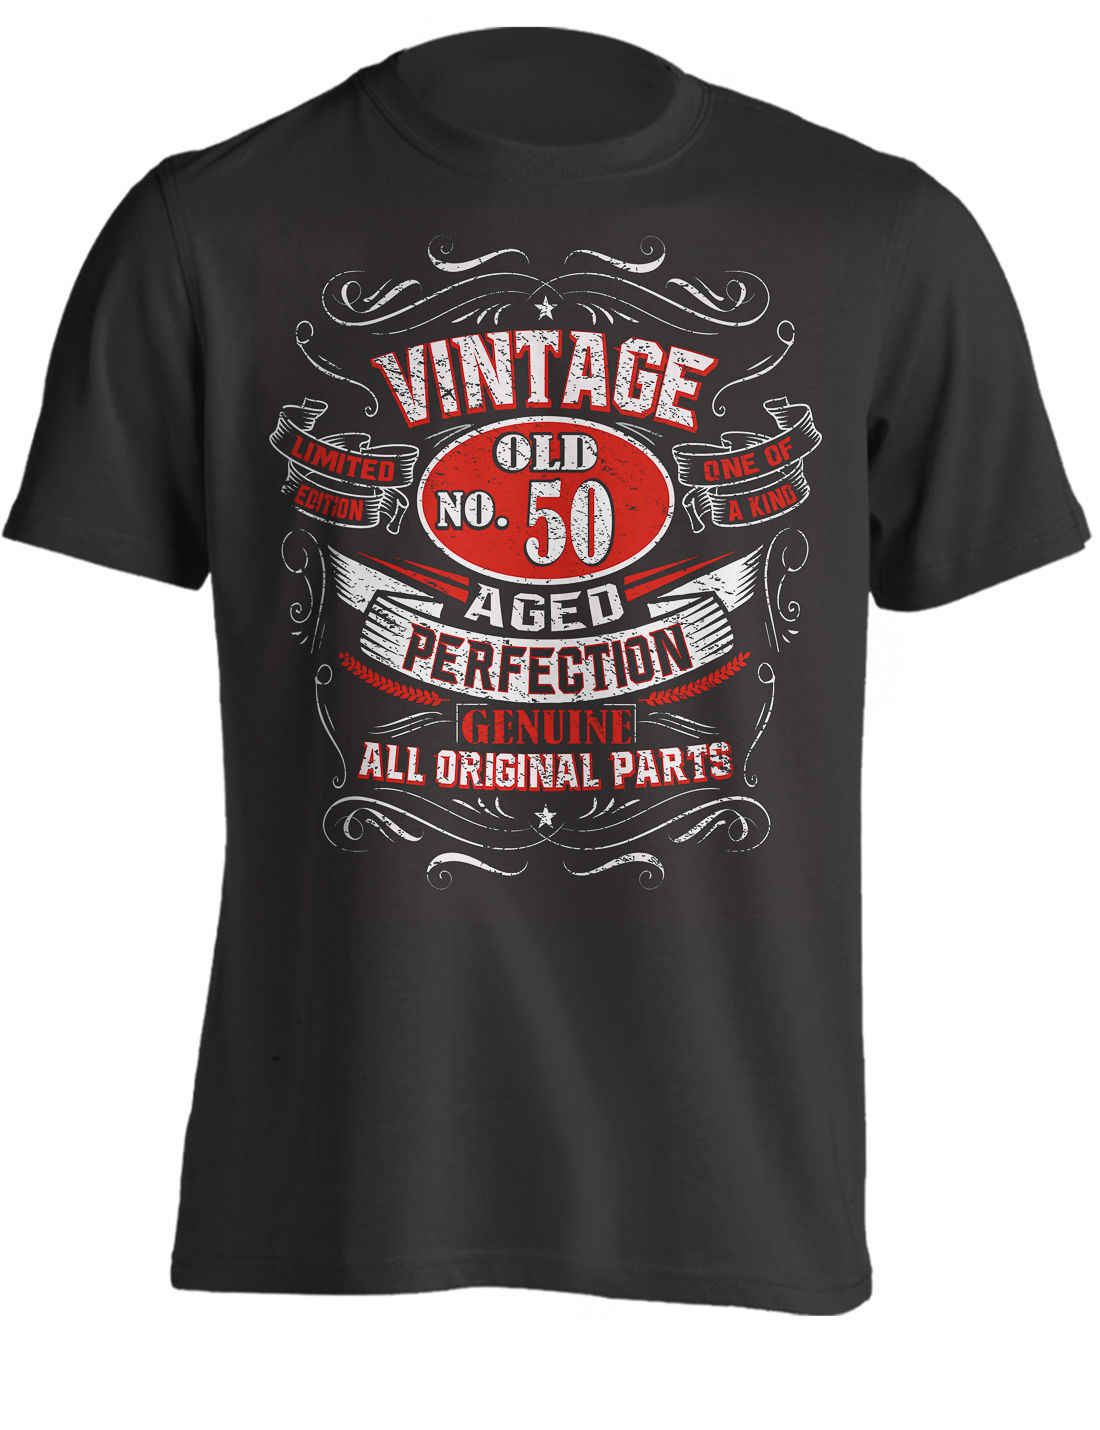 2db5882b 50th Birthday Gift Shirt Vintage No 50 Born in 1969 | T-Shirt Cool Casual